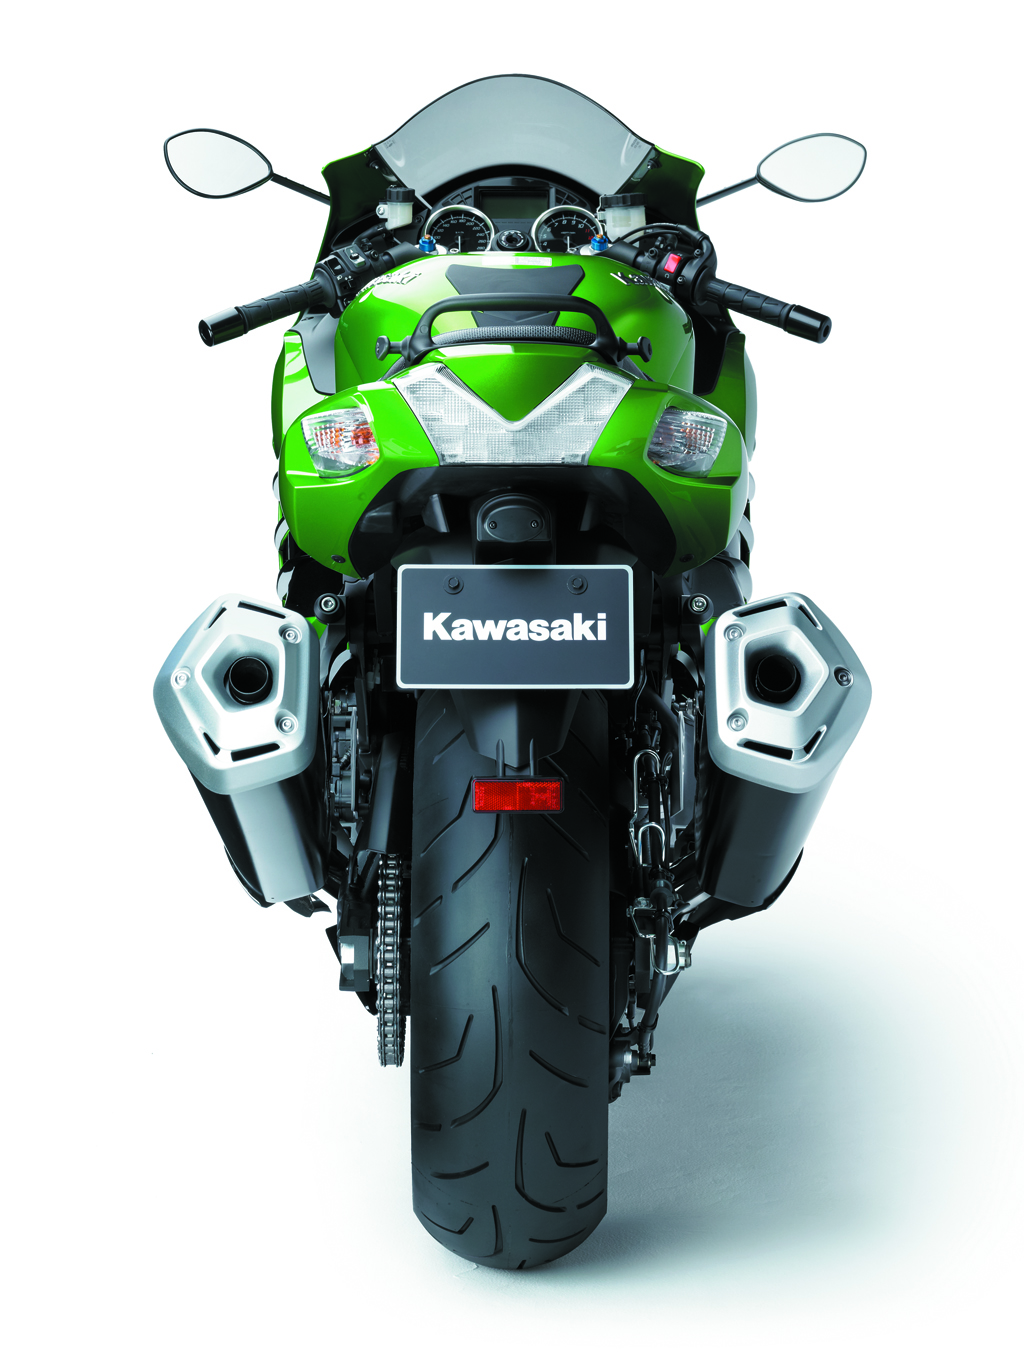 kawasaki 2012 la nouvelle zzr1400 le site suisse de l 39 information moto. Black Bedroom Furniture Sets. Home Design Ideas